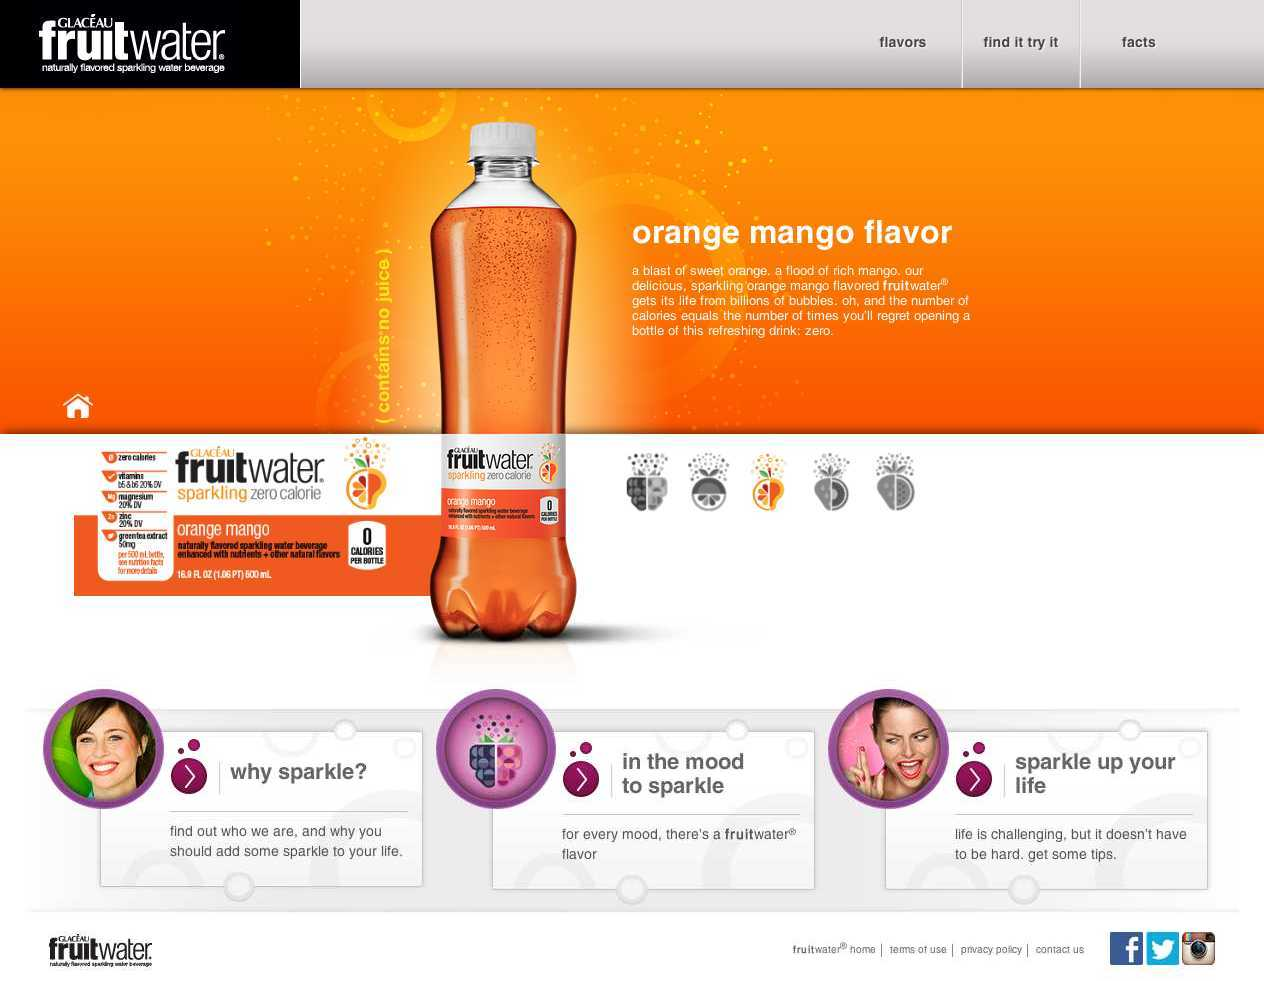 Fruitwater Orange Mango Flavor Page